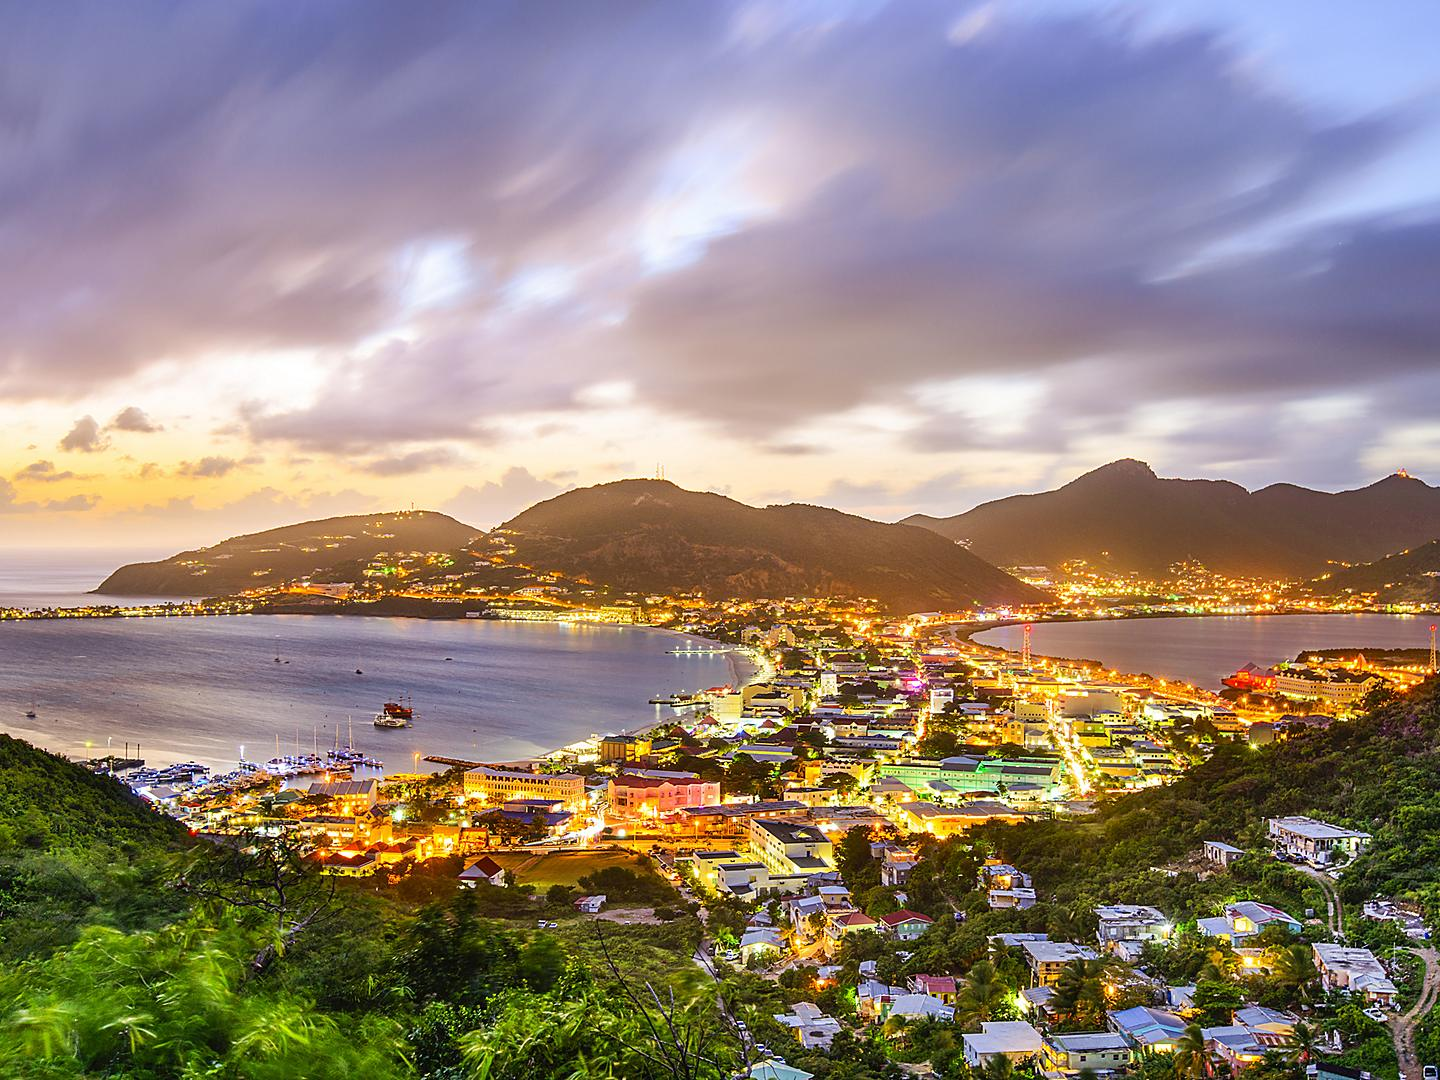 Philipsburg, St. Maarten, Great salt pond sunset lights